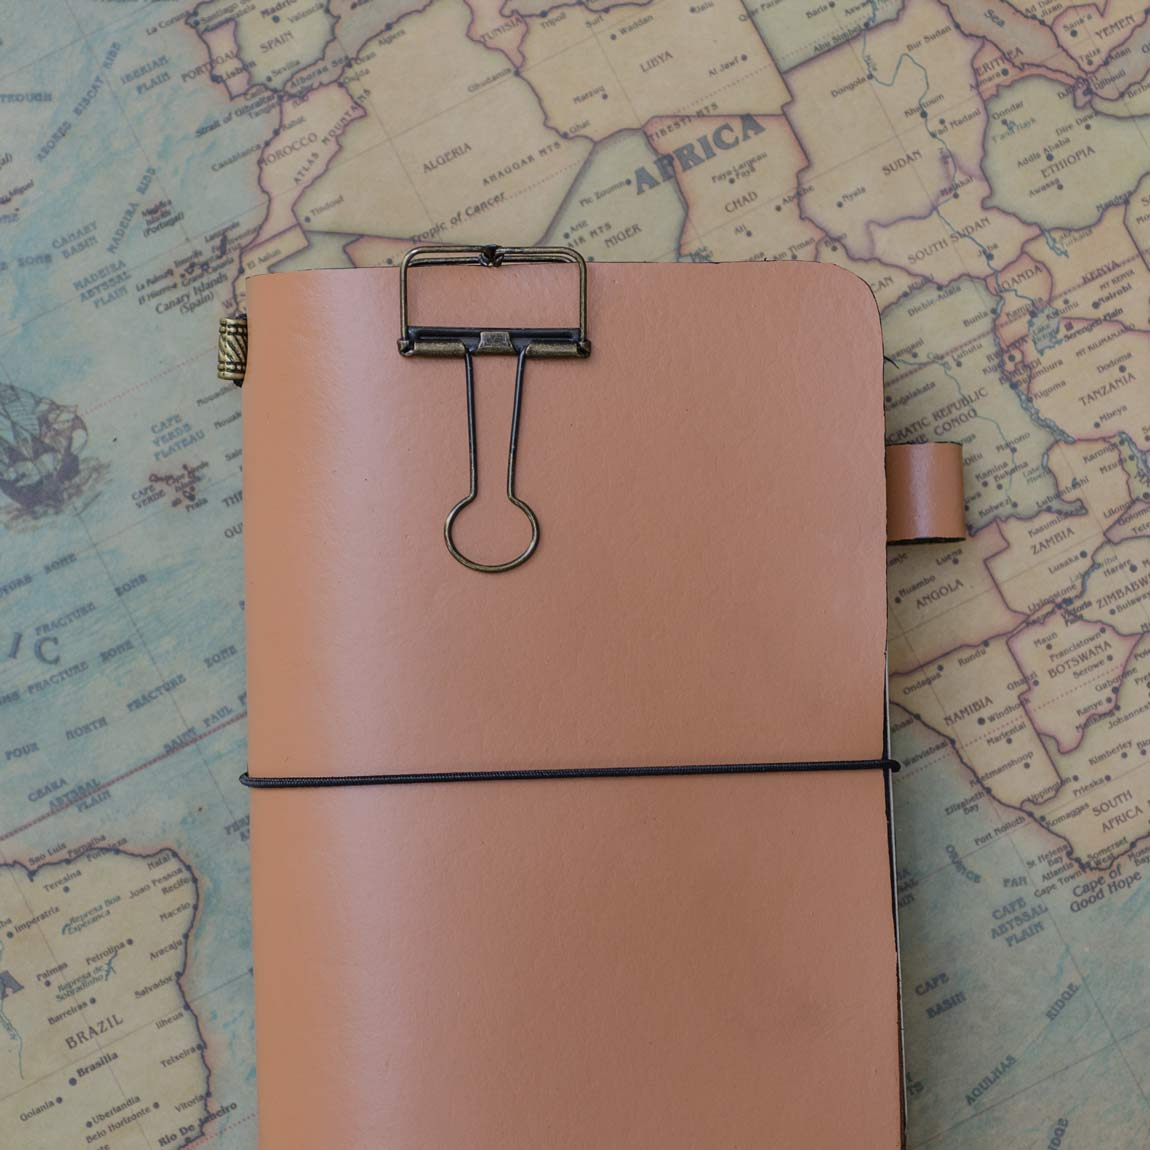 TBC Traveller's Journal - Tan